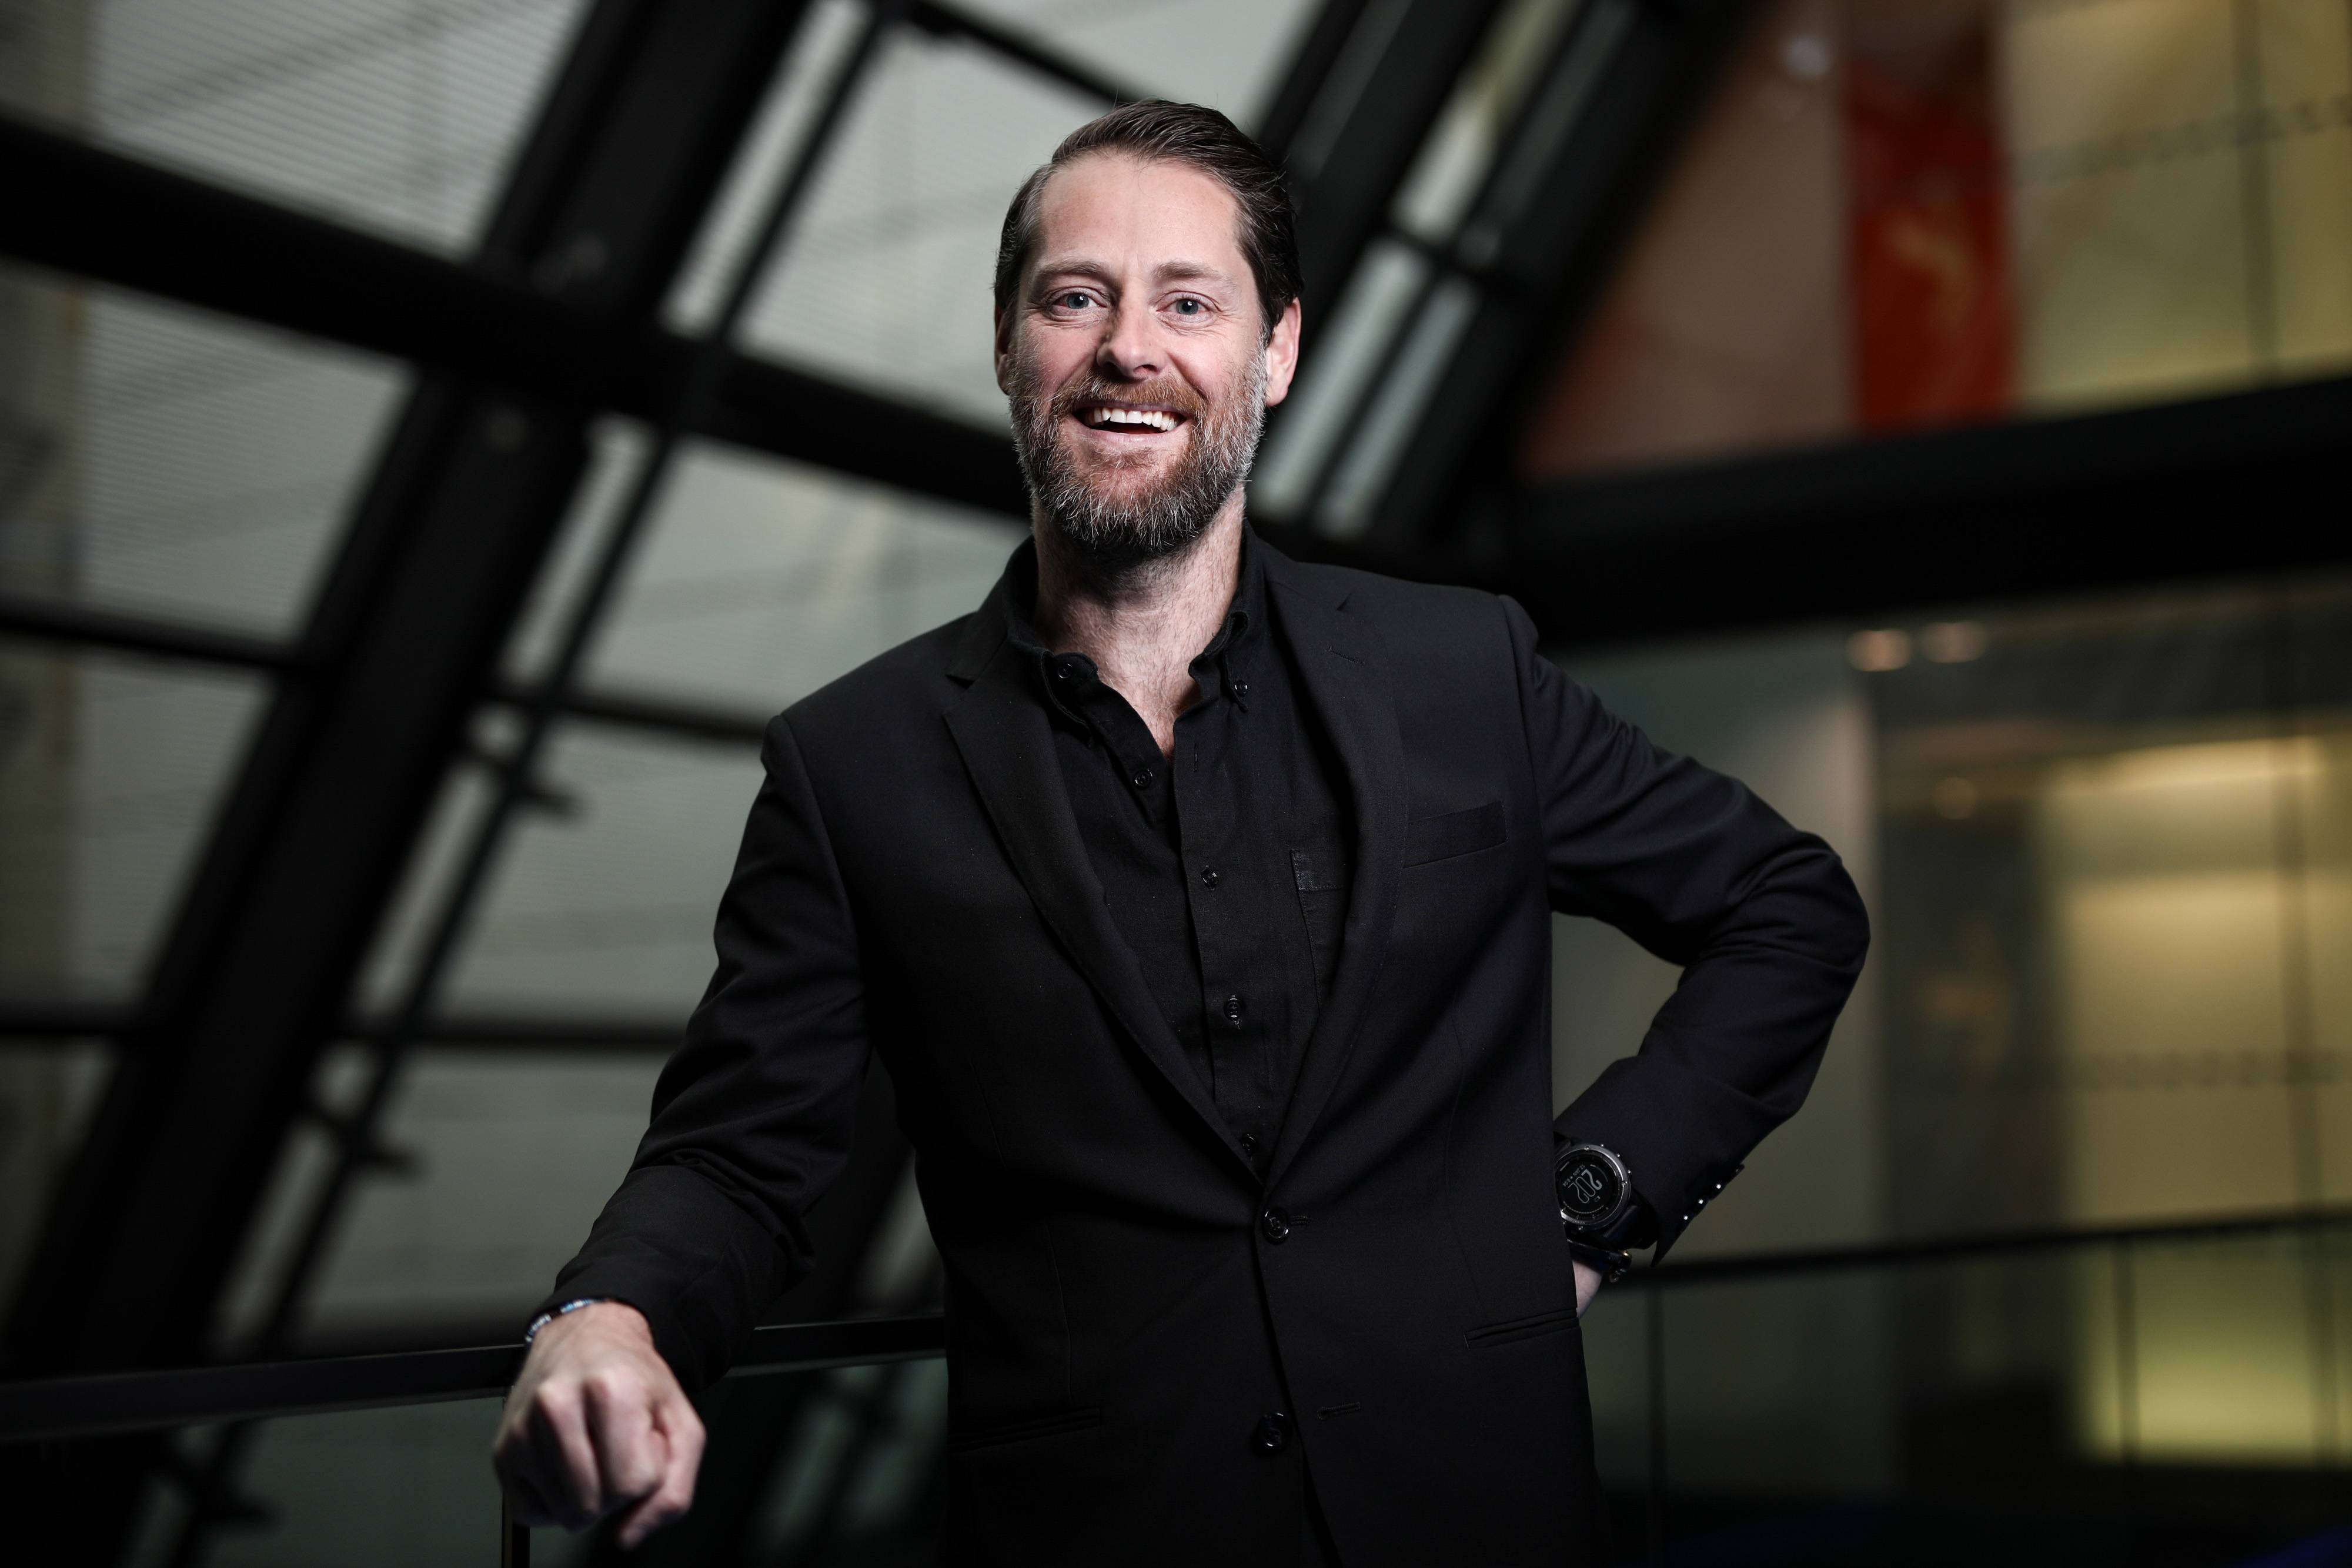 Ryan Holmes is chief executive officer of Canada's Hootsuite Media Inc., which builds software that manages corporate customers' social media.